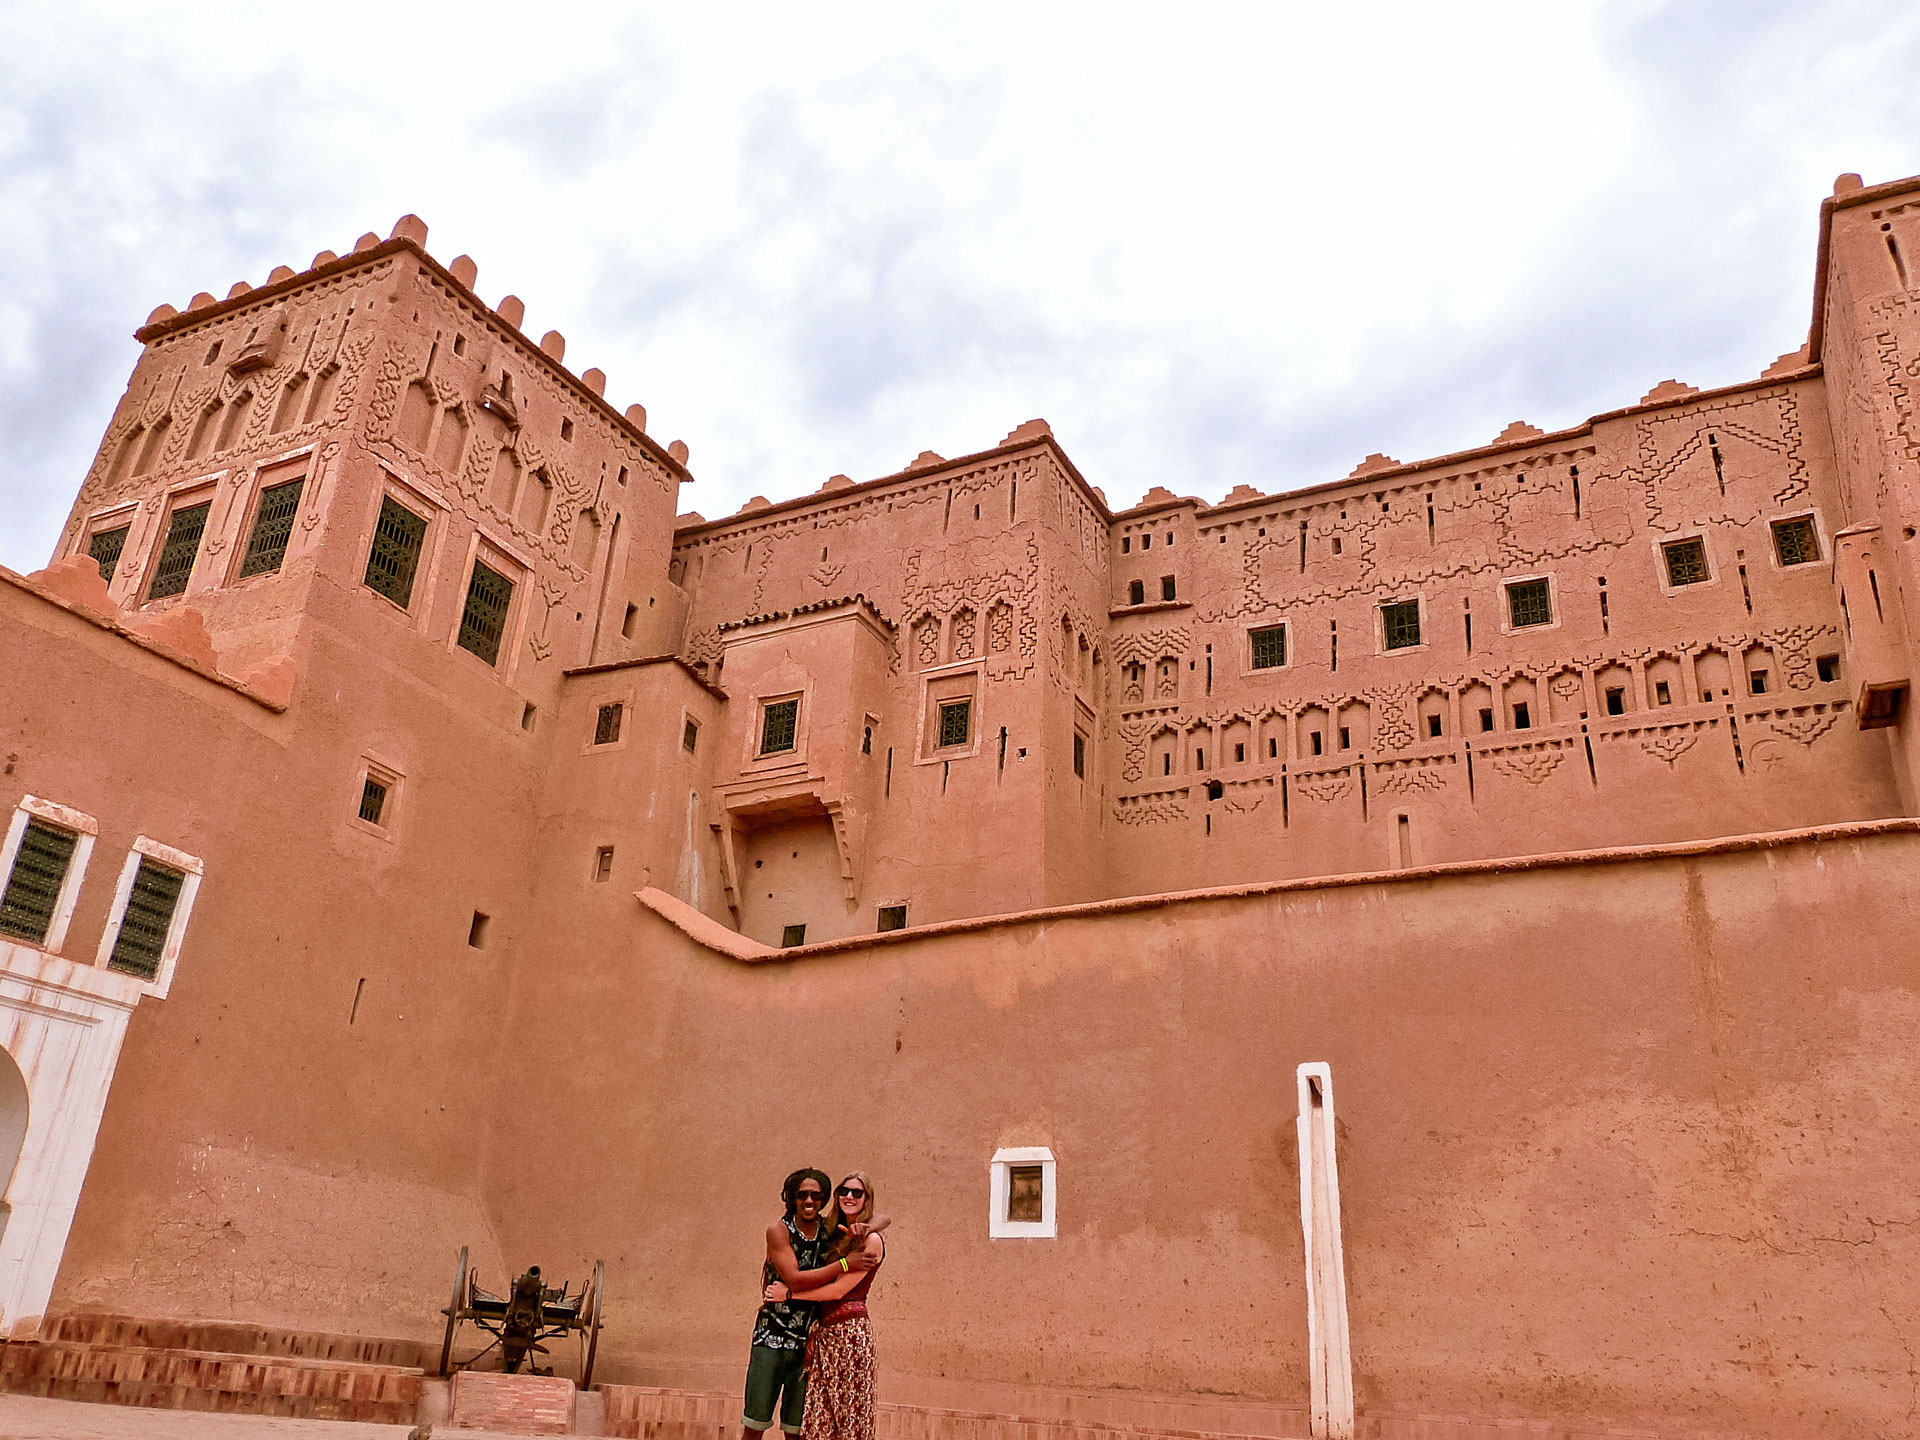 Travel couple in Taourirt Kasbah in Ouarzazate, Morocco